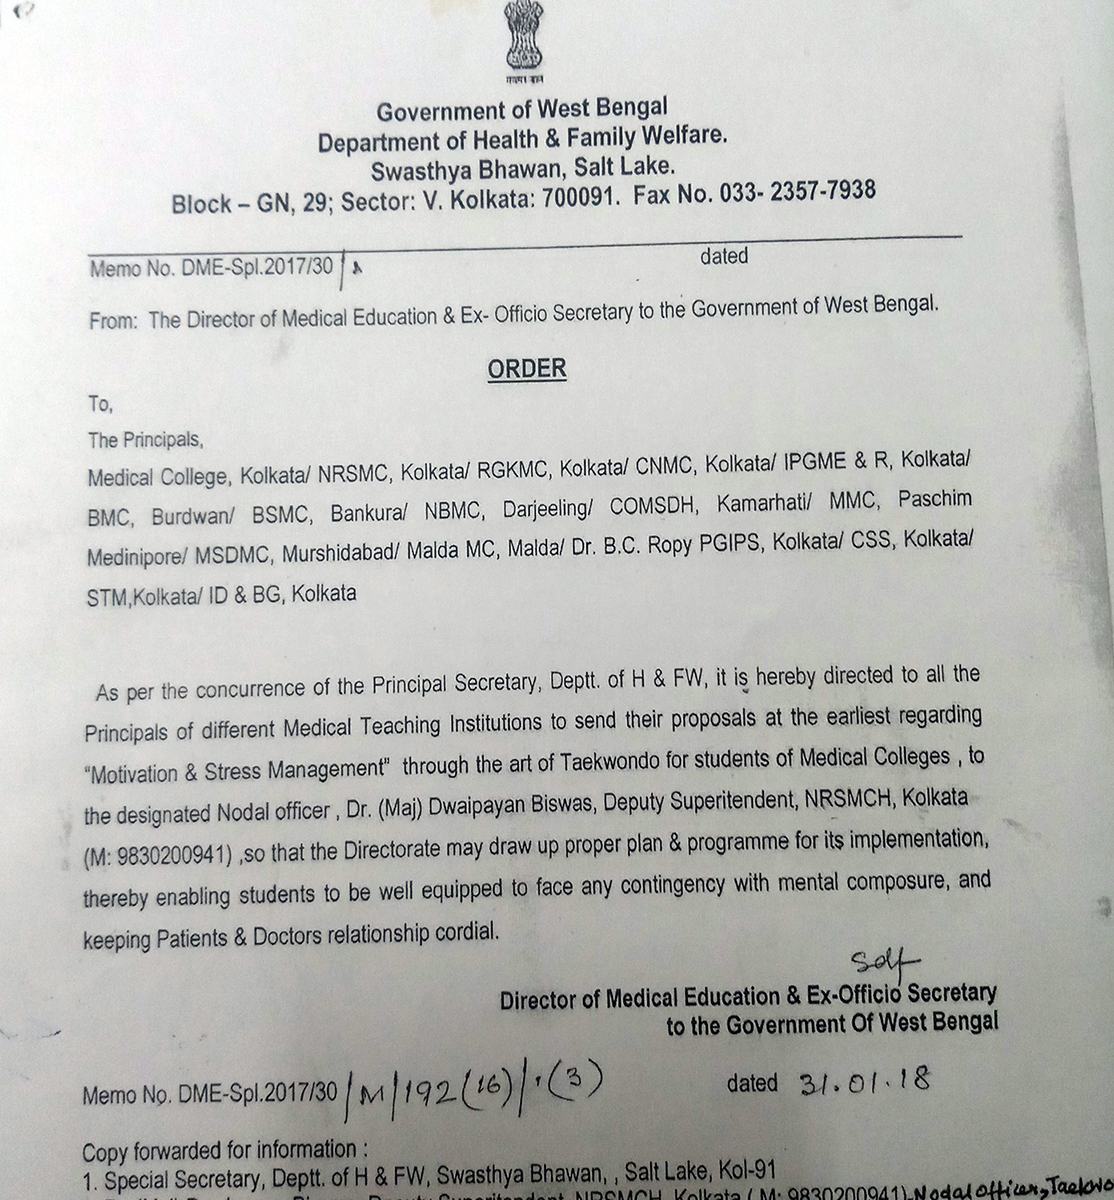 The government's notification asking medical colleges for proposals to start taekwondo training.